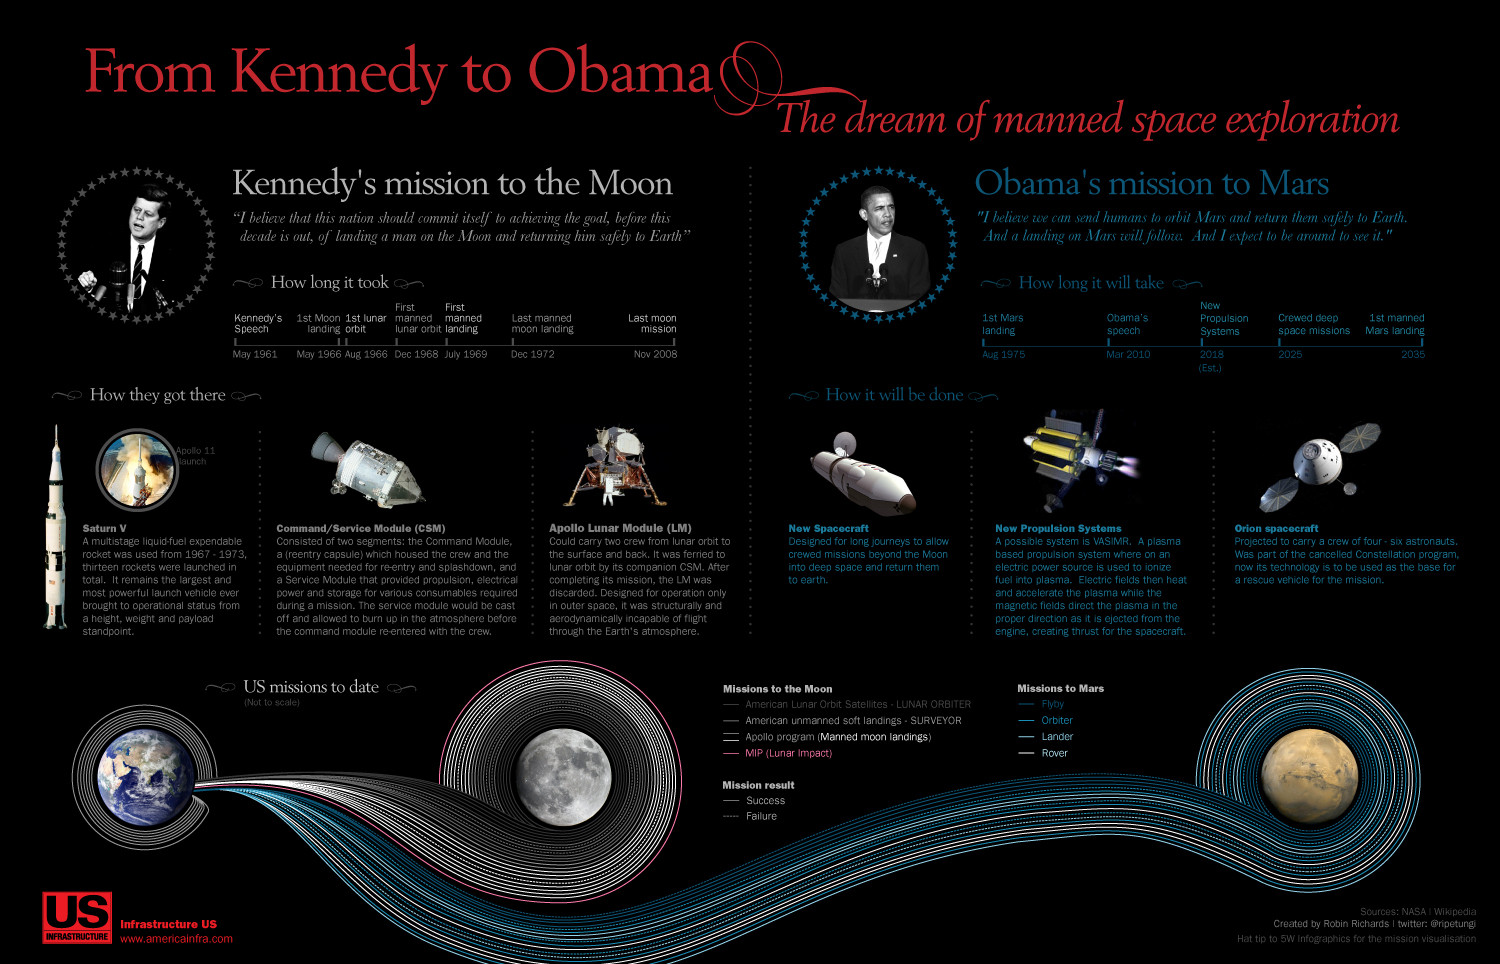 From Kennedy to Obama The Dream of Manned Space Exploration Infographic